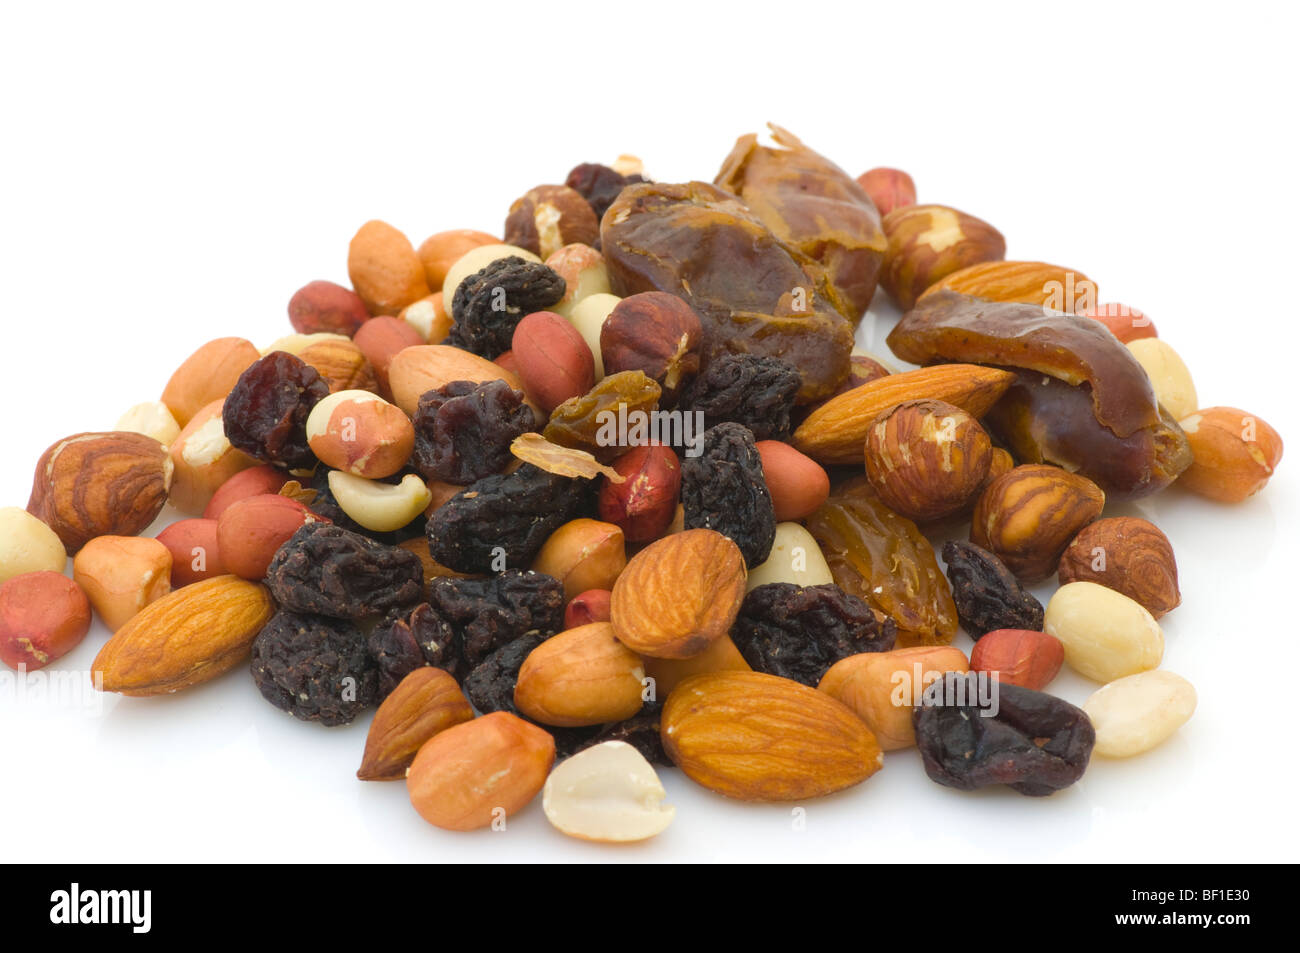 Pile Of Mixed Nuts and Dried Fruit Against A White Background Stock Photo